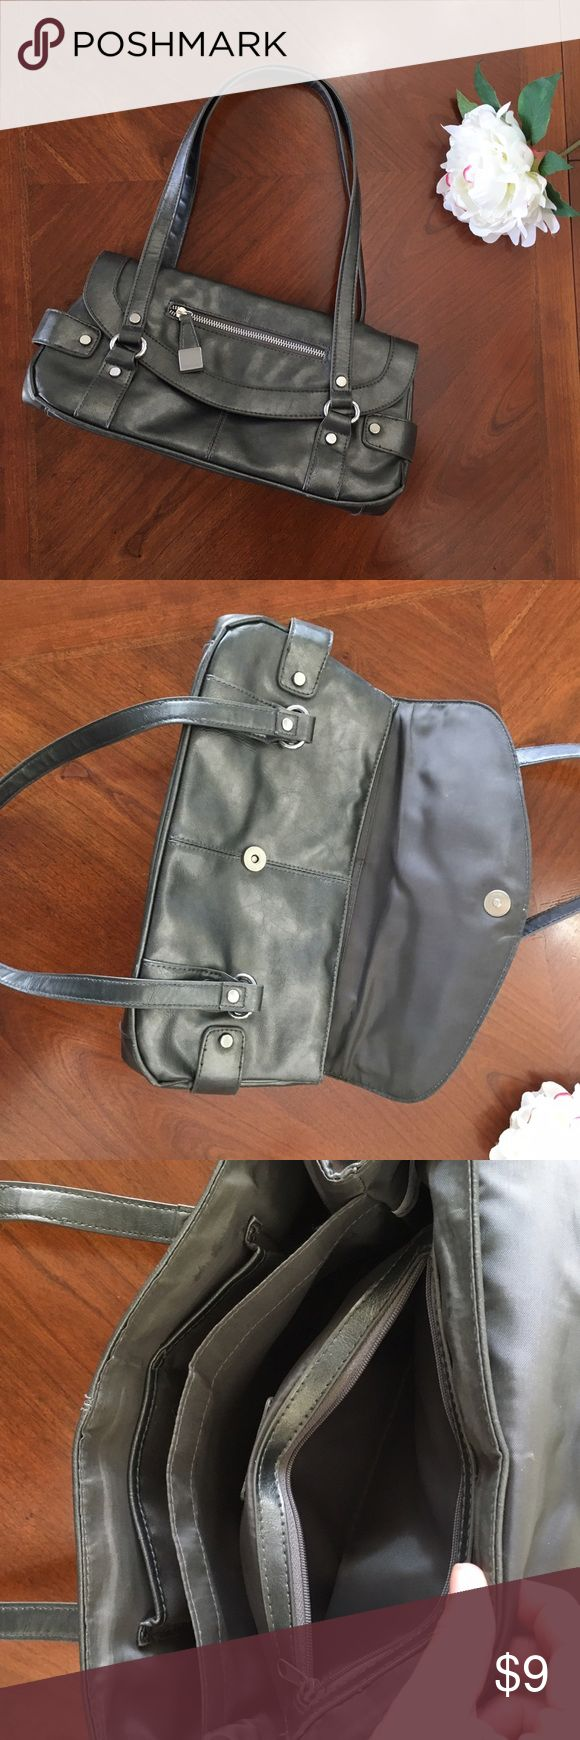 Apt. 9 dark silver shoulder bag gray lining purse VGUC apt 9 gray and metallic silver faux leather shoulder bag purse. See pics for approx measurements. Smoke free home. Apt. 9 Bags Shoulder Bags